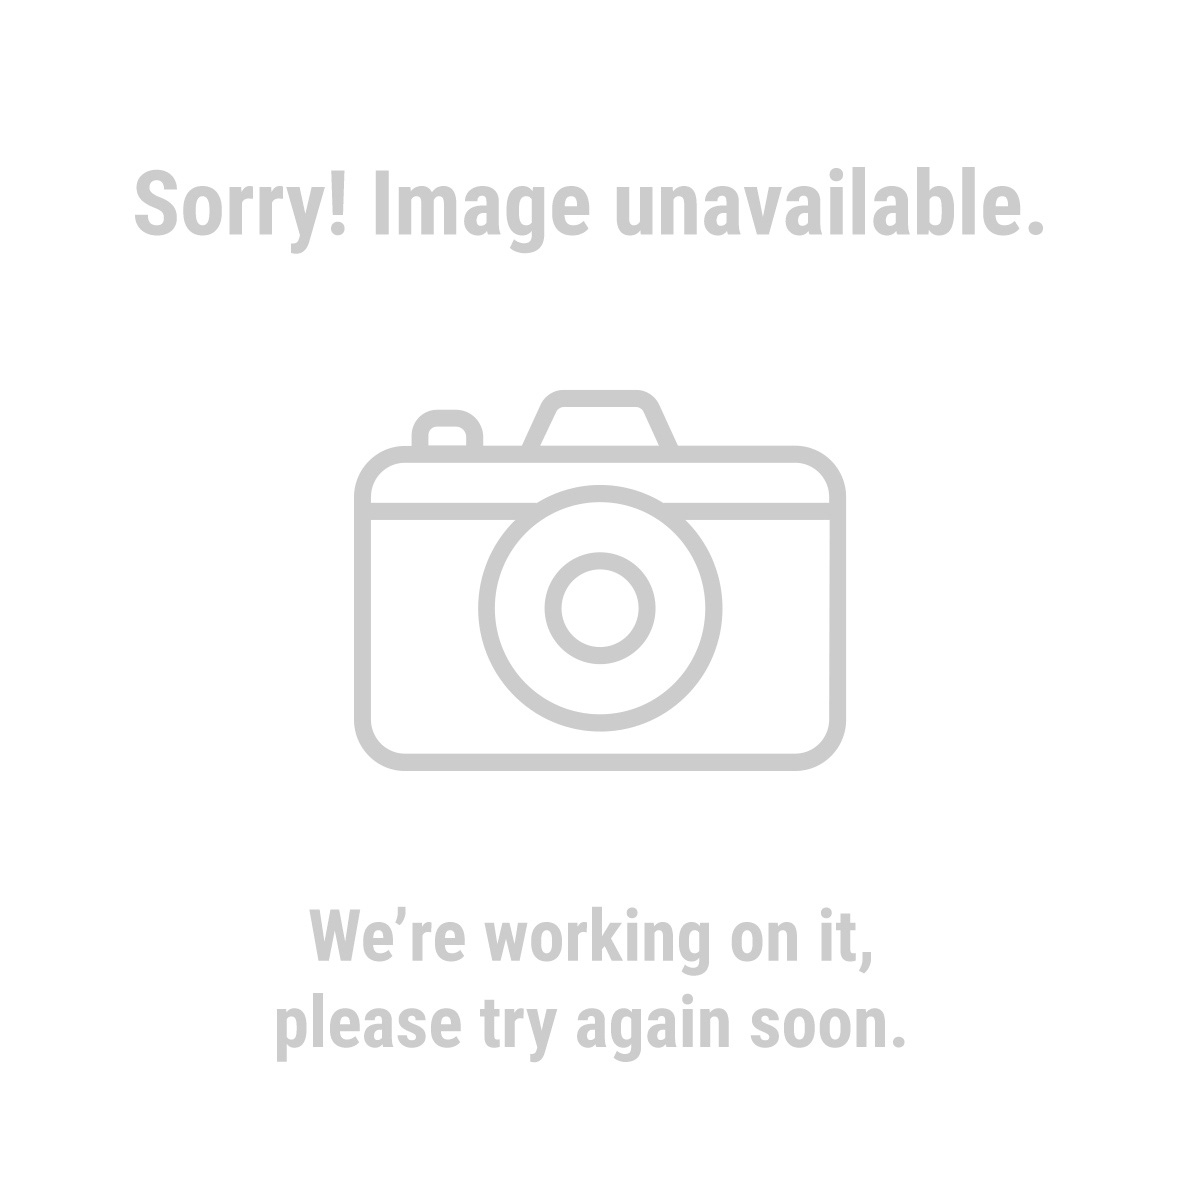 "Pittsburgh 67908 7 Piece 3/8"" Drive Metric Impact Swivel Socket Set"